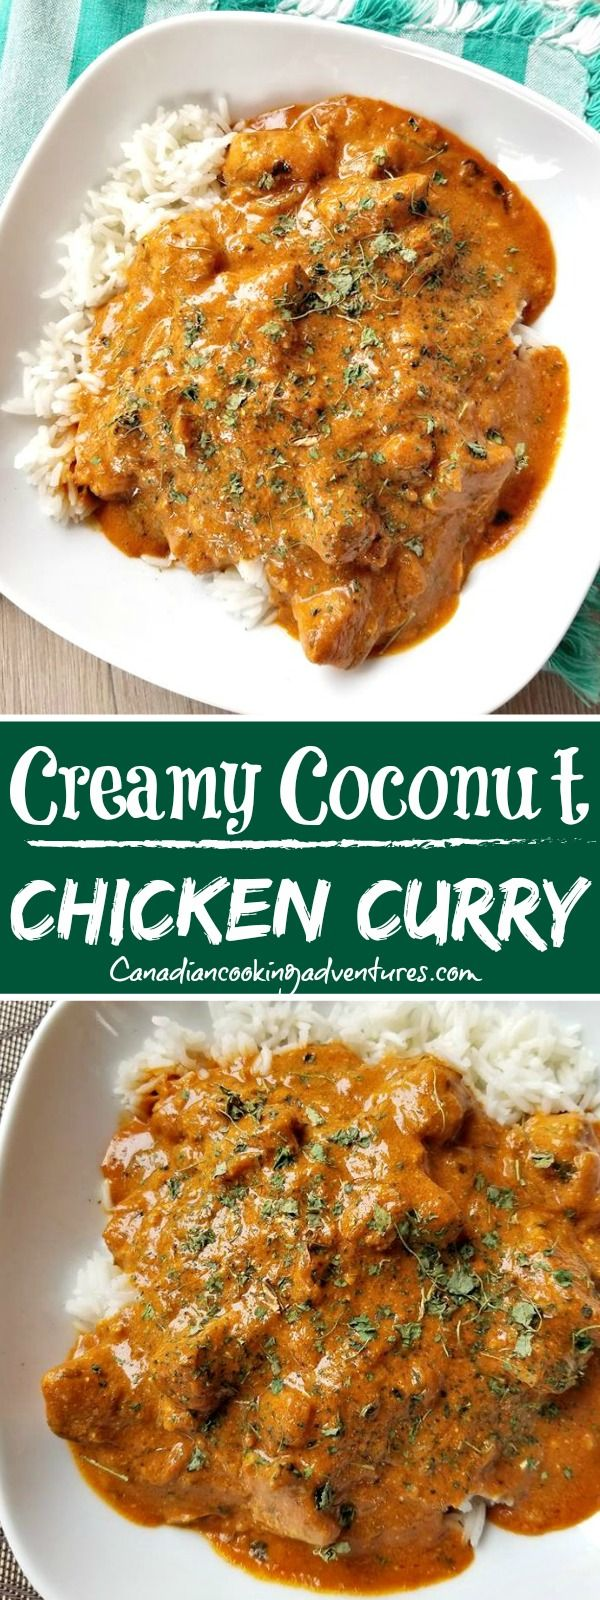 Recipe #2 Creamy Coconut Curry Chicken: **Personal notes: Combined this recipe with the first. We didn't use the passata sauce, the first spice, and didnt use yogurt. Used Coconut cream instead of coconut milk (they may be the same).***